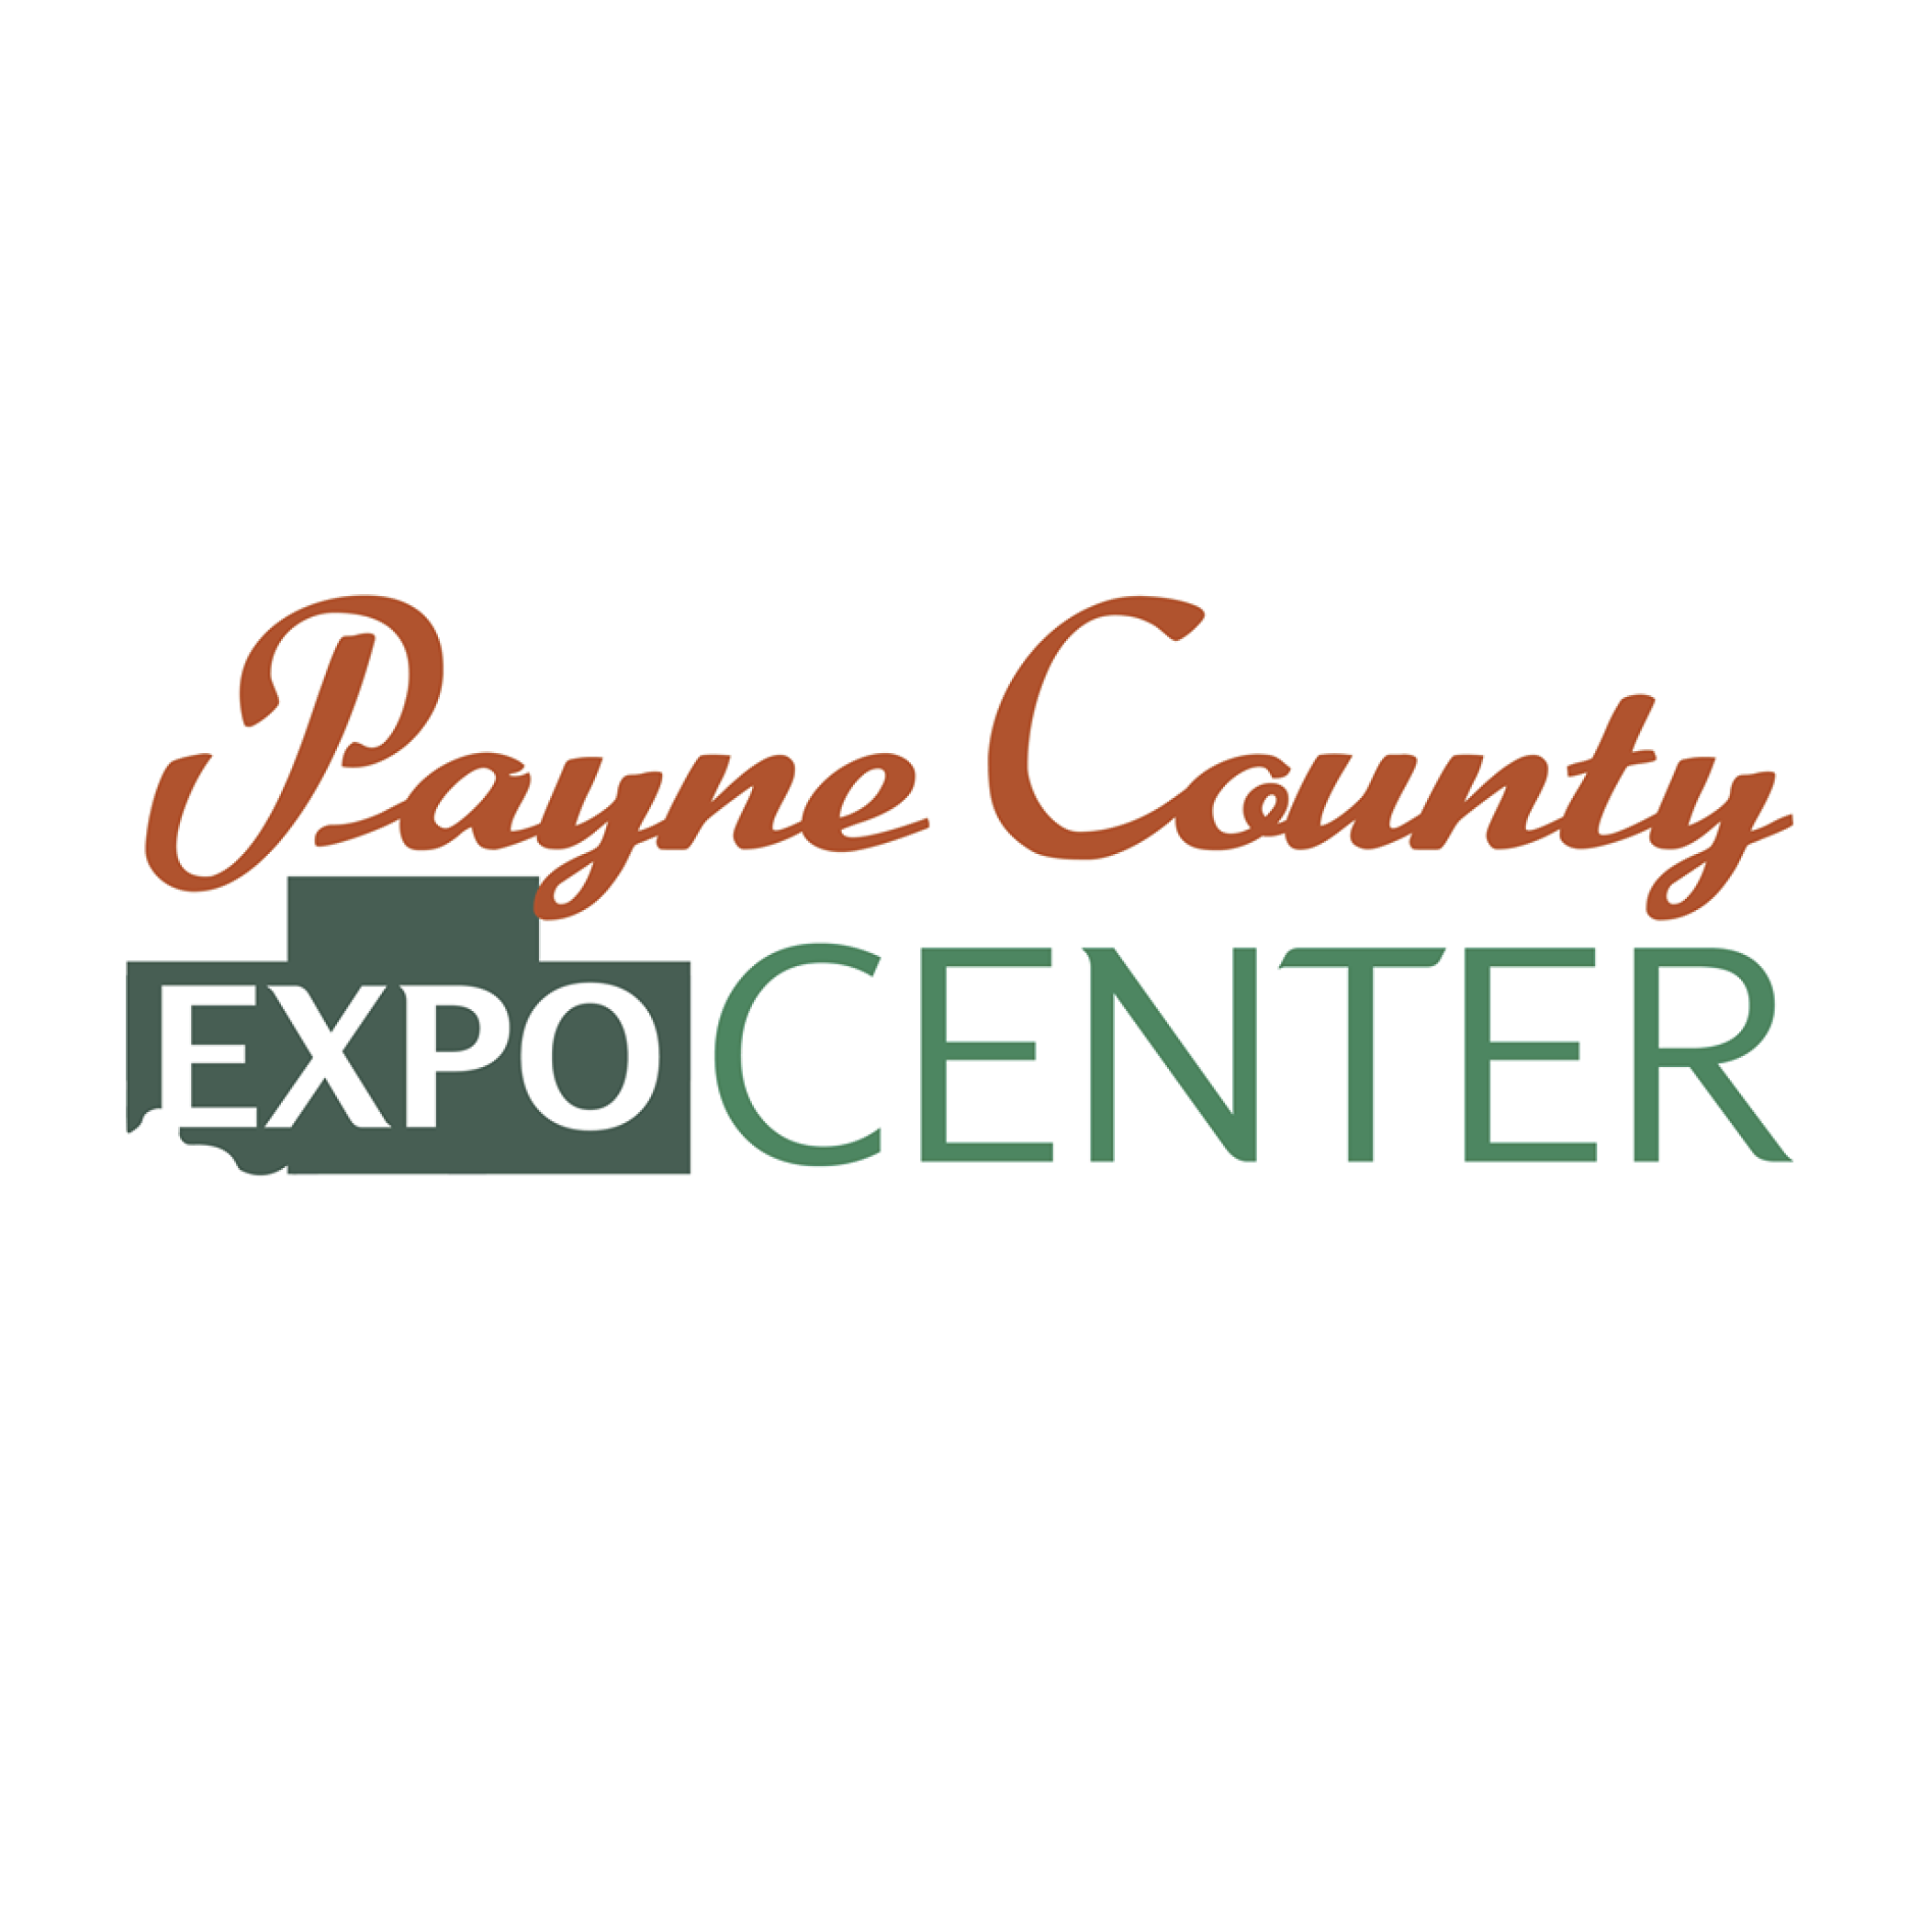 Payne County Expo Center Visit Stillwater